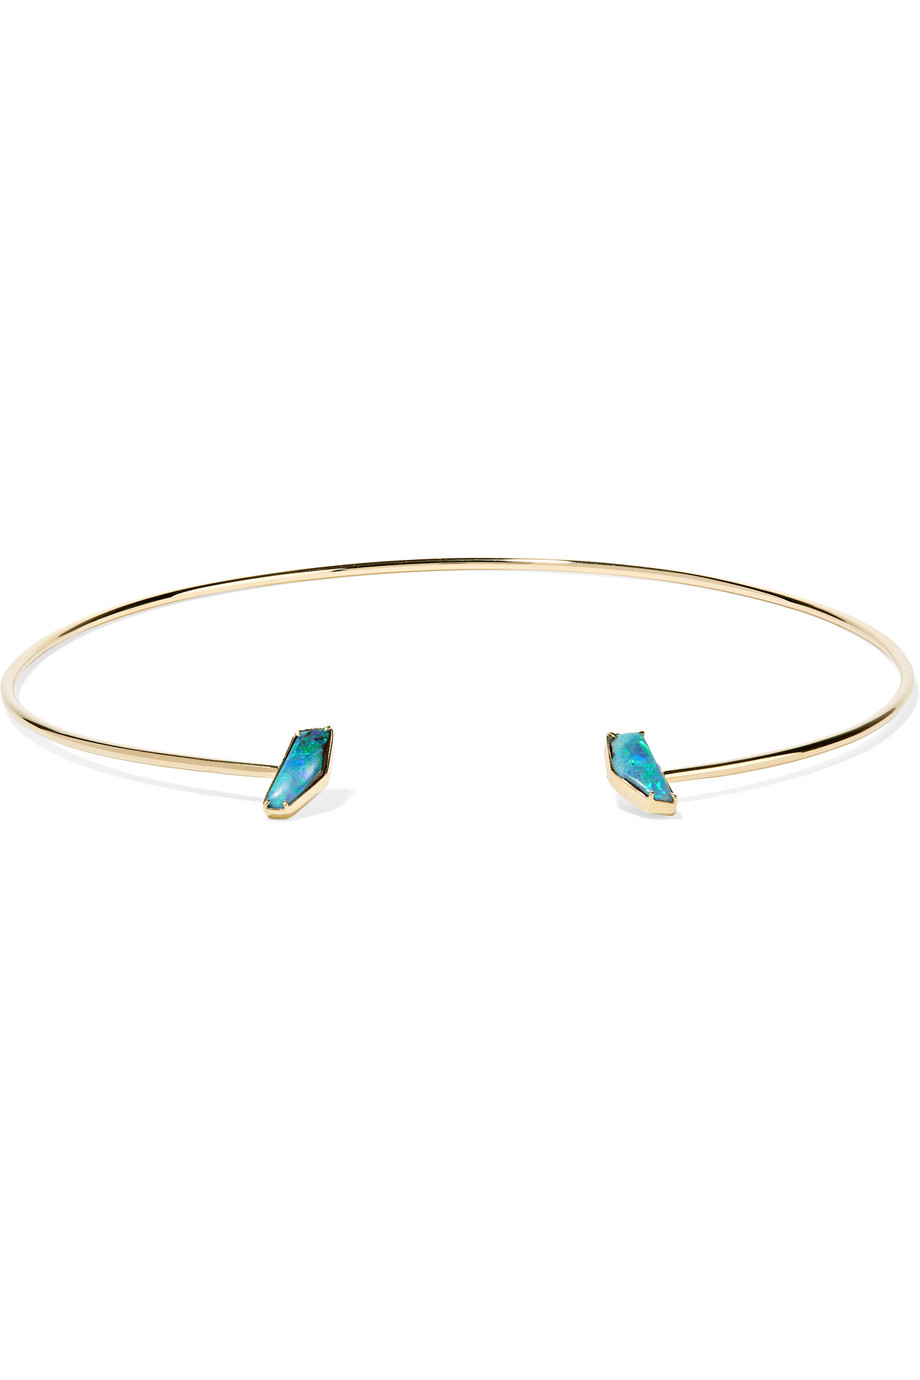 18-Karat Gold Boulder Opal Necklace, Kimberly Mcdonald, Gold/Blue, Women's